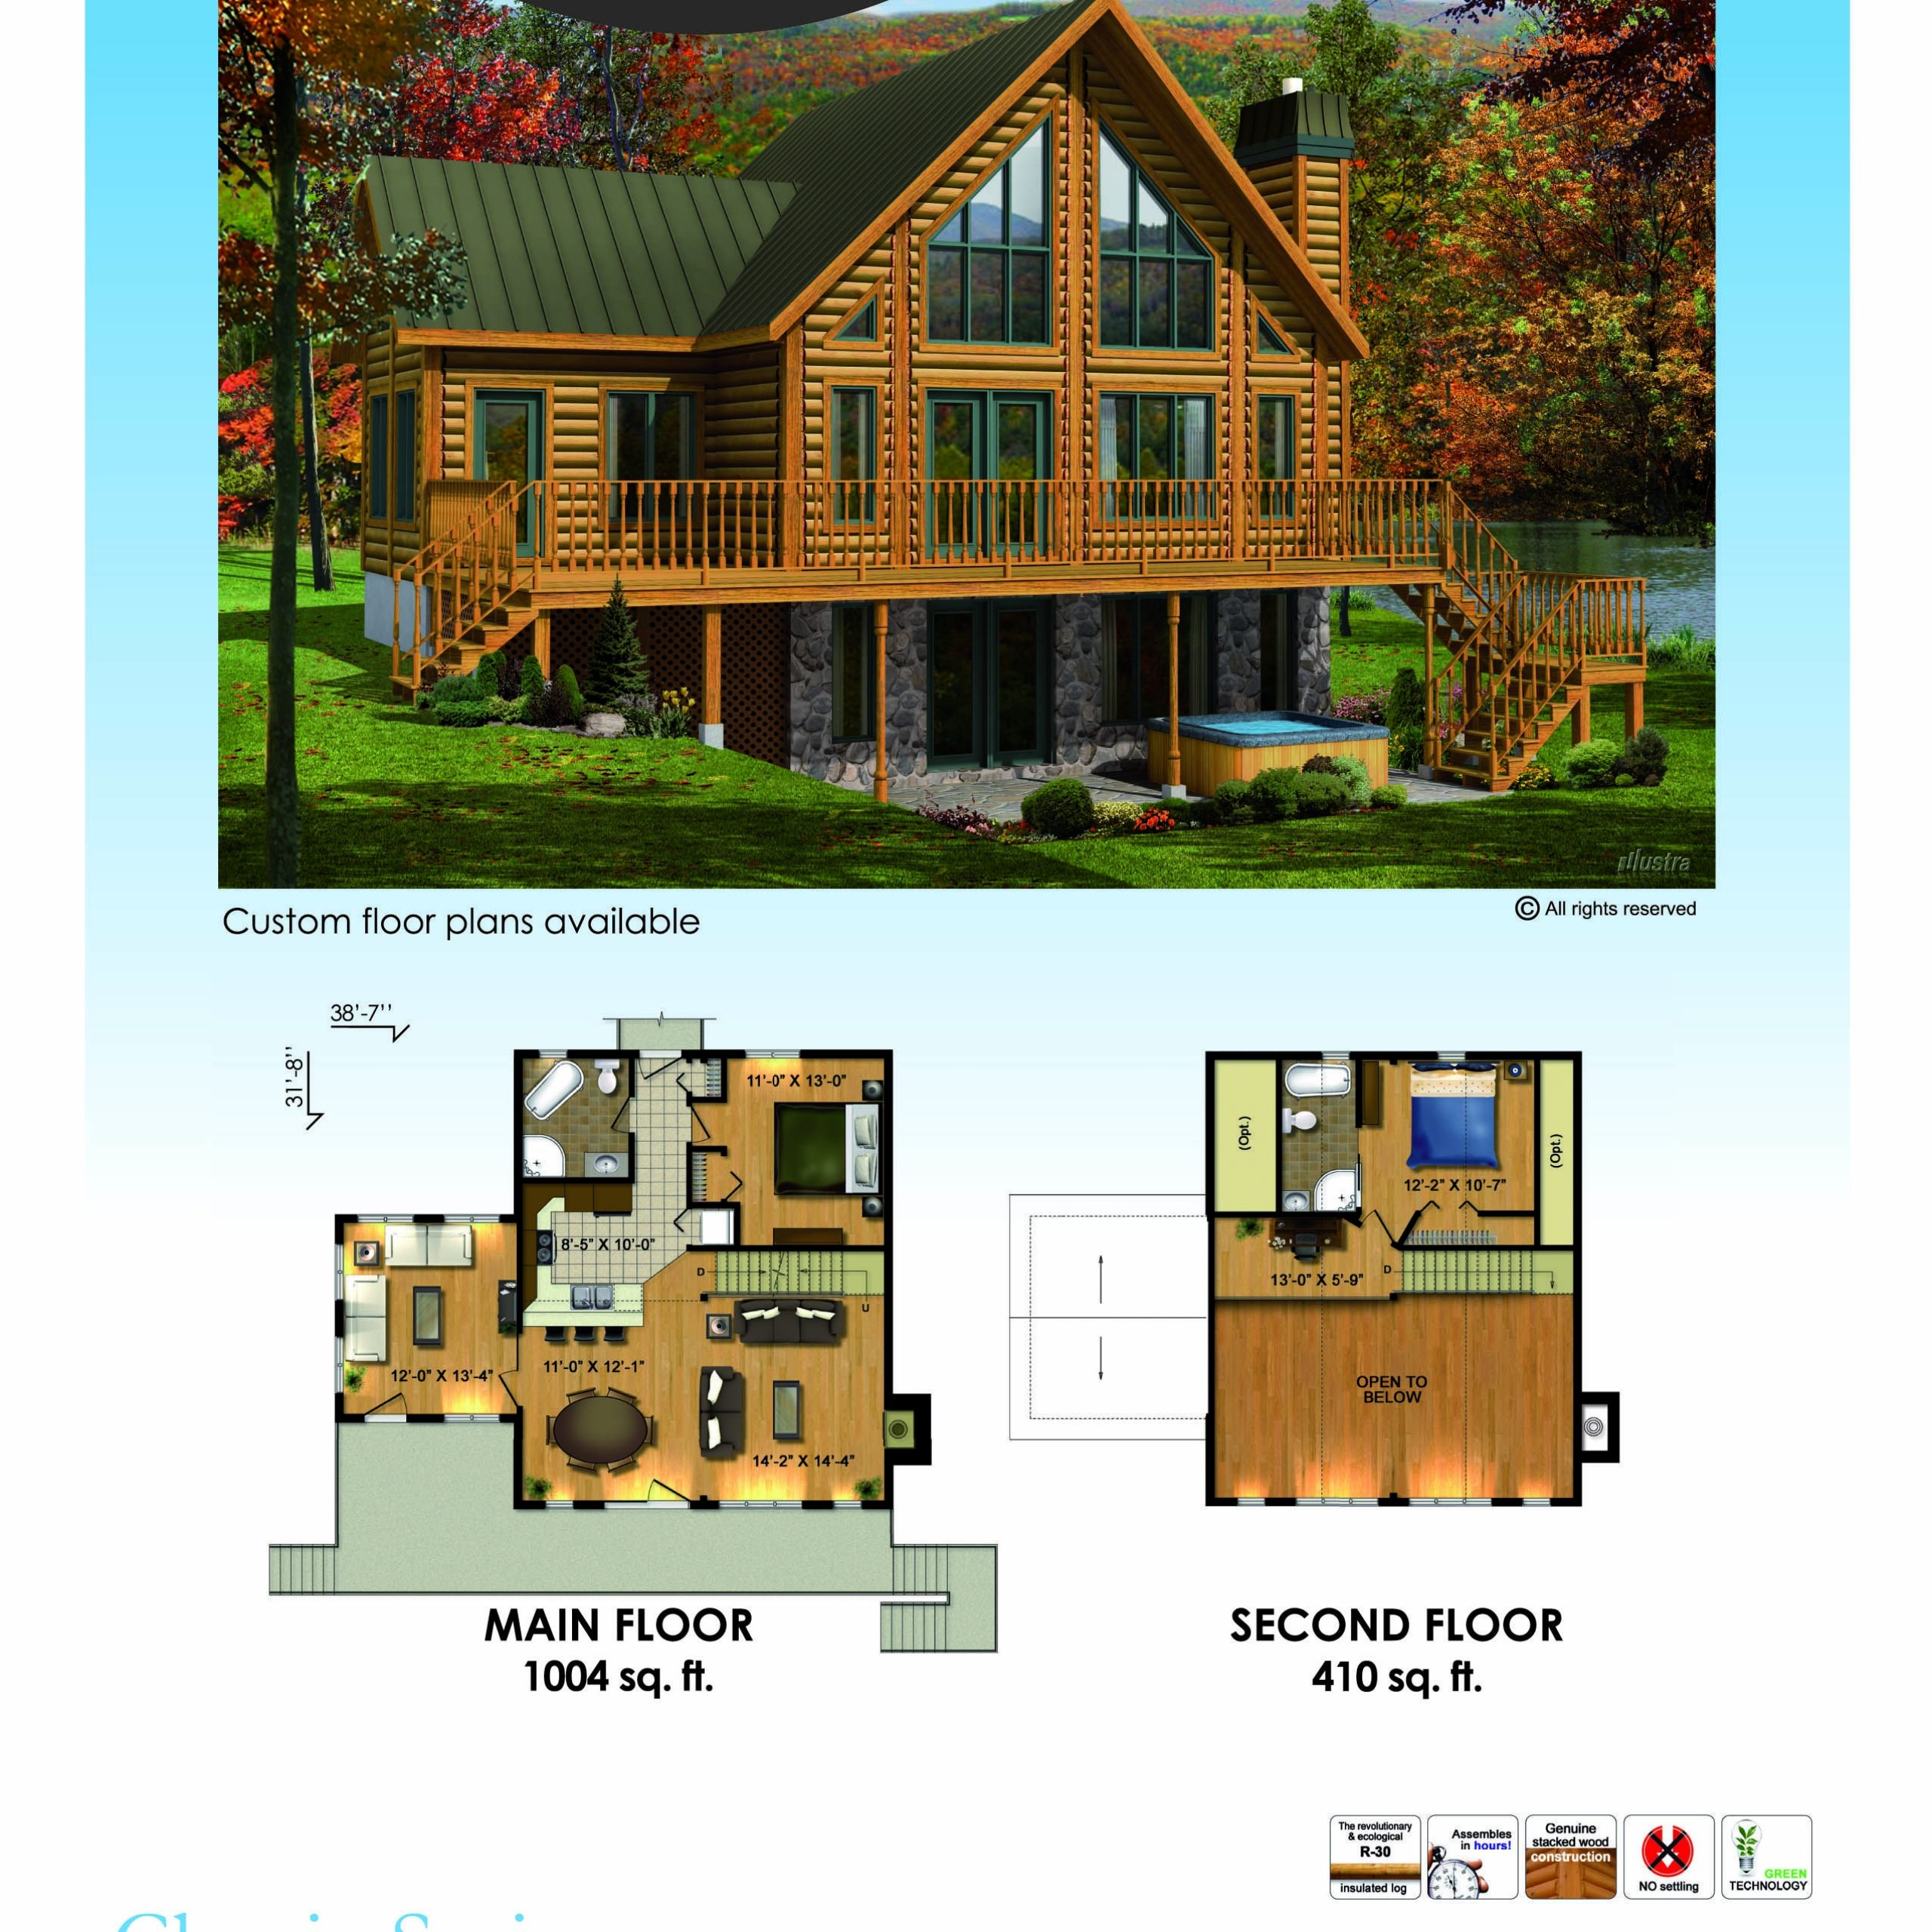 Https Www Vrogue Co Cabin House Plans With Loft Stupendous 83 Amazing Loft Stair For Tiny House Ideas On Cabin House Plans With Loft